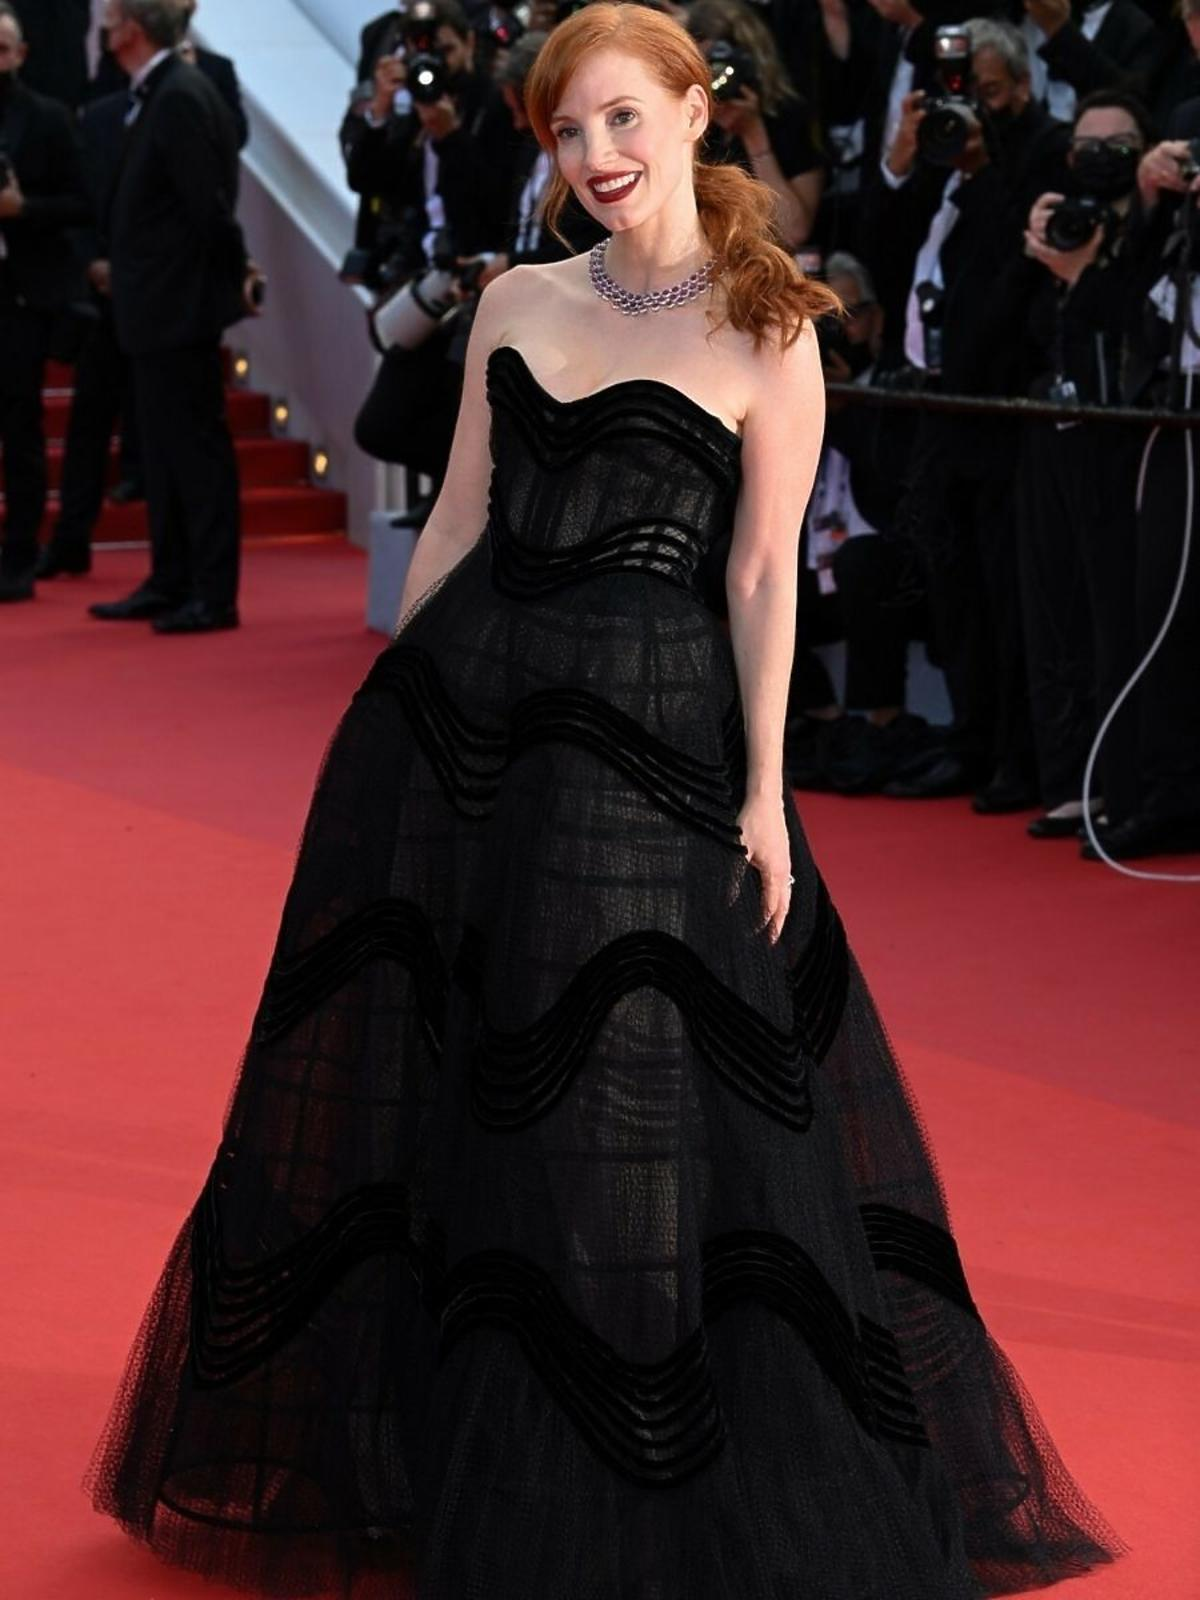 Cannes 2021: Jessica Chastain